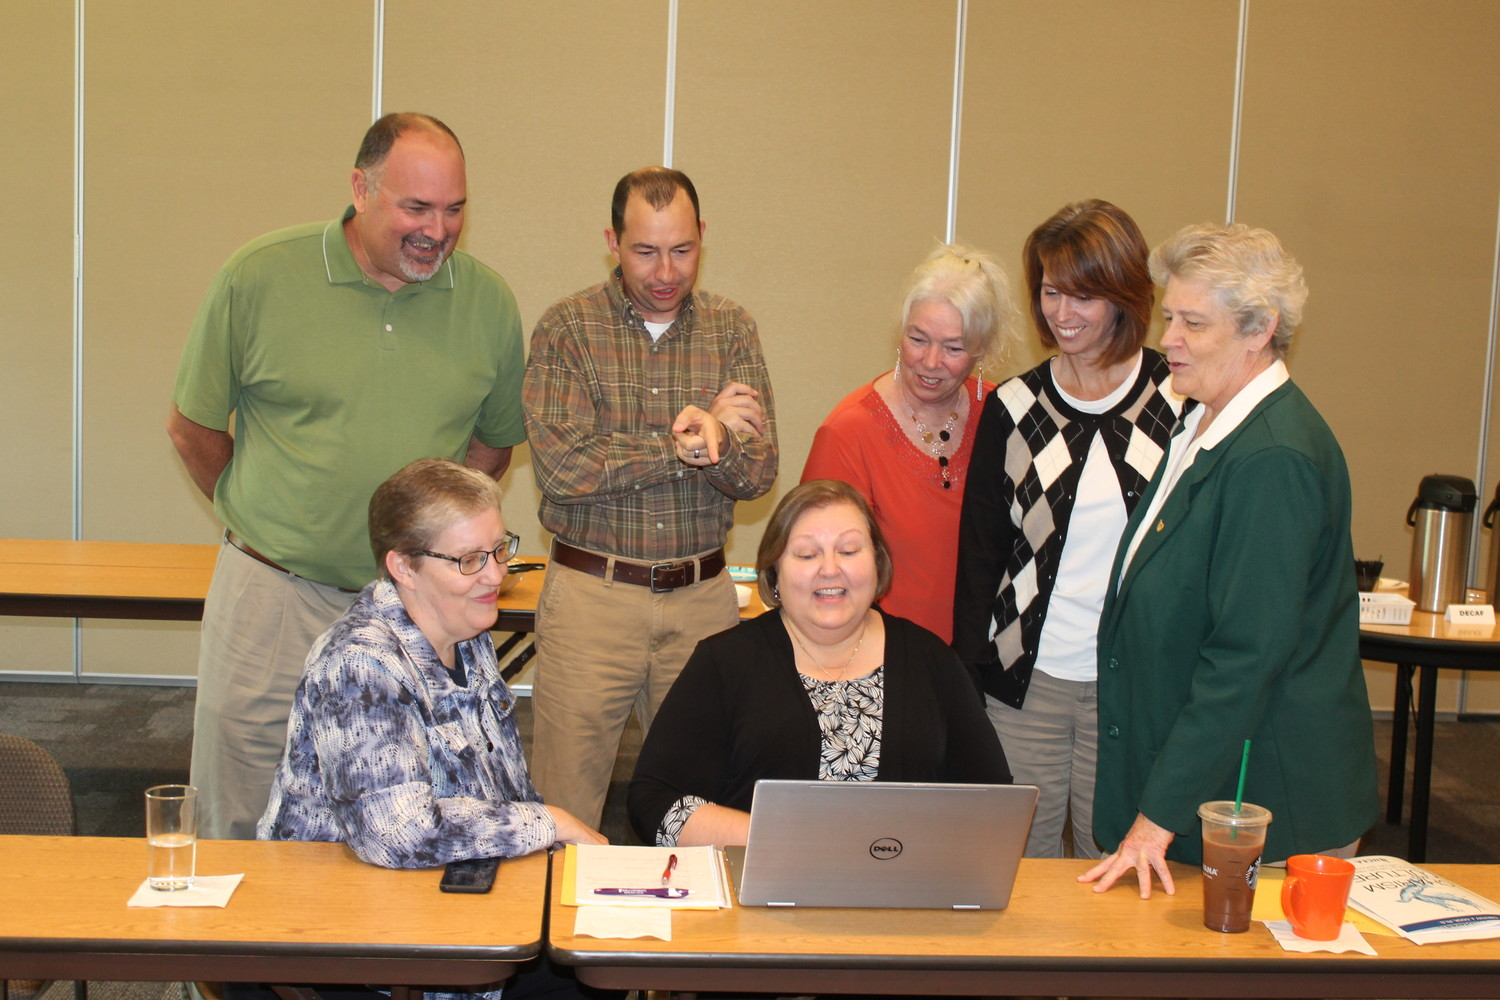 Sister Julie Brandt SSND, diocesan associate superintendent of Catholic schools, seated at left, and Sister Elizabeth Youngs SCL, diocesan school superintendent, standing at right, visit with Catholic school principals during a meeting in Jefferson City Oct. 30.